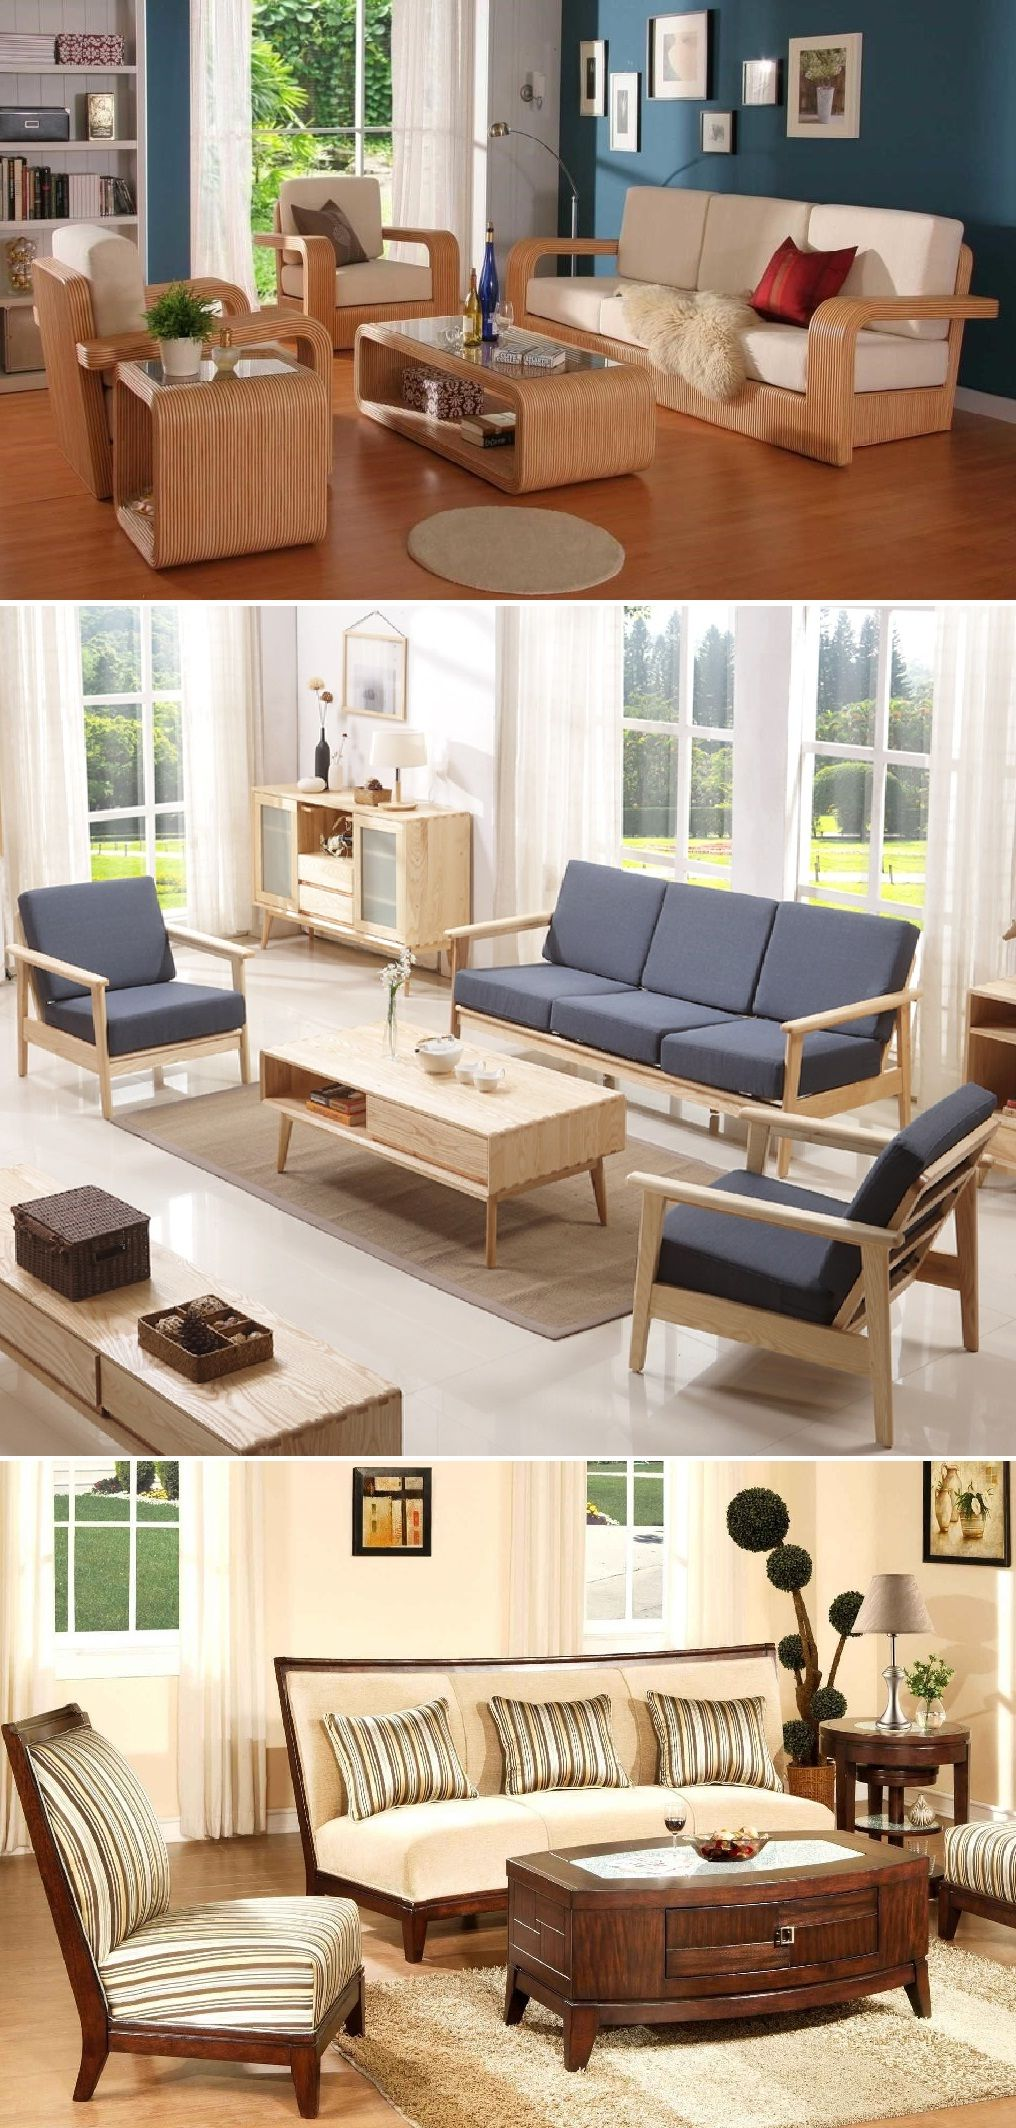 Simple Wooden Sofa Design For Drawing Room Couches And Furniture